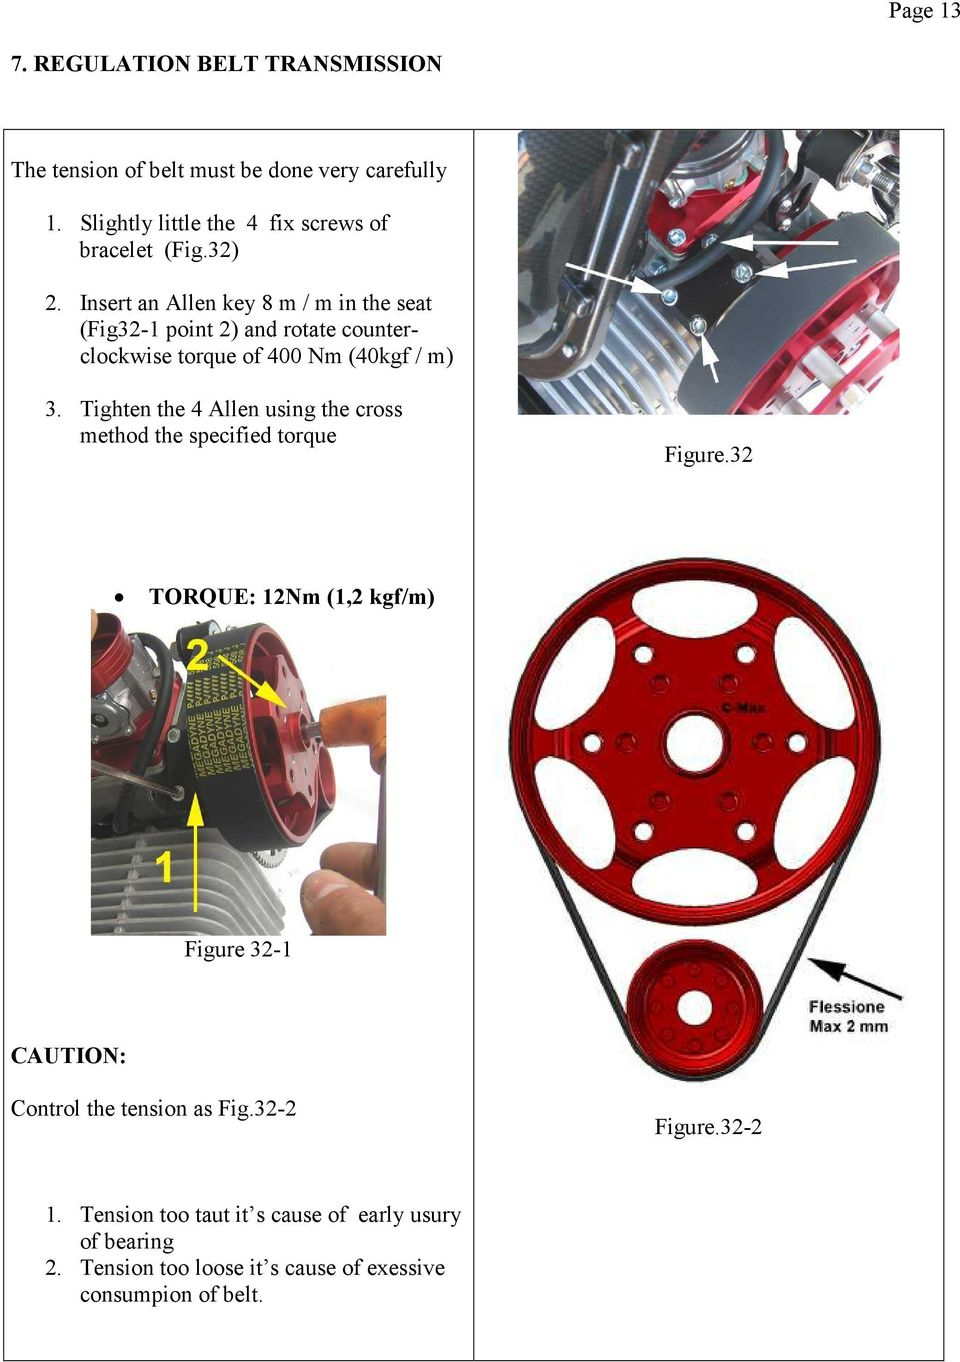 Insert an Allen key 8 m / m in the seat (Fig32-1 point 2) and rotate counterclockwise torque of 400 Nm (40kgf / m) 3.